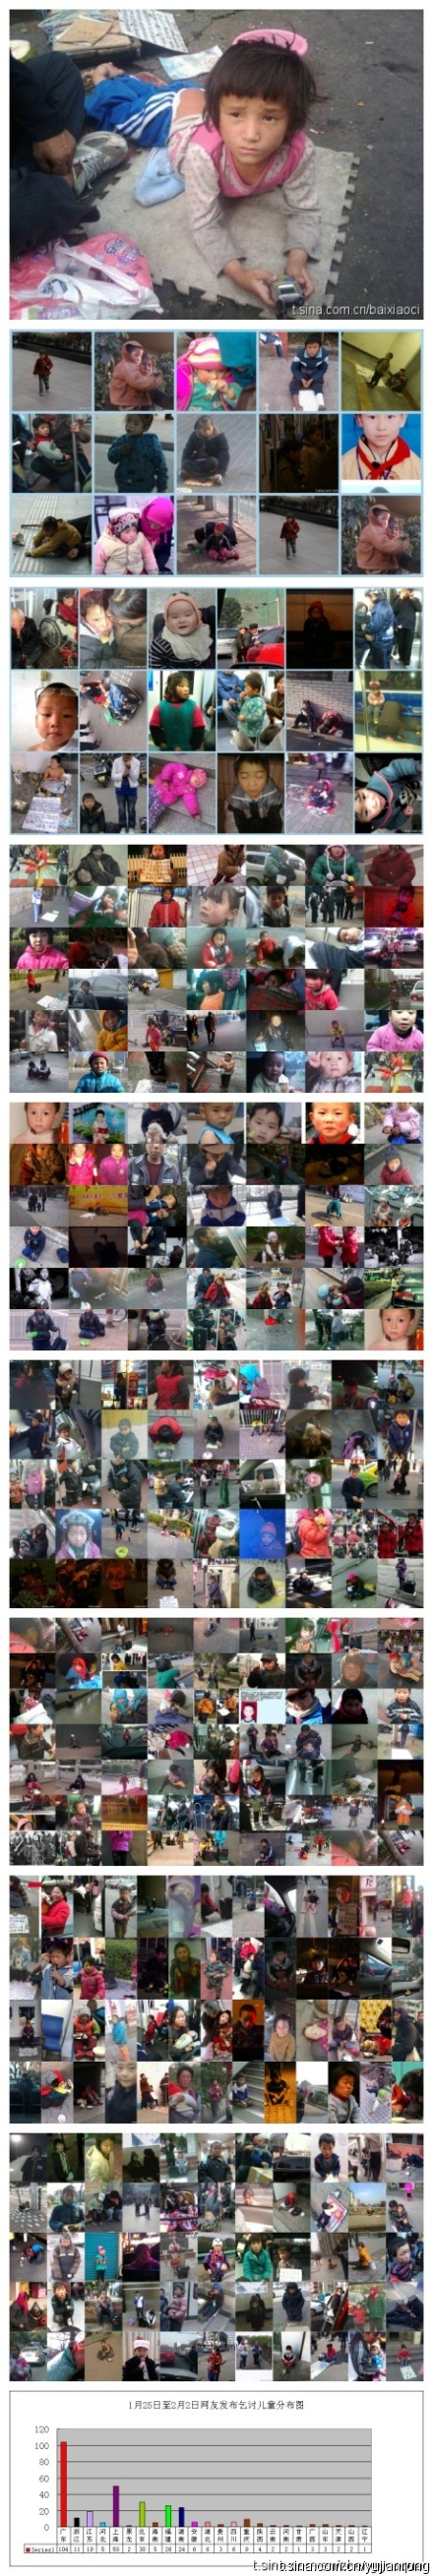 Collection of photos of child beggars and missing children submitted by Chinese netizens to Yu Jianrong as posted on his Sina Weibo microblog account.